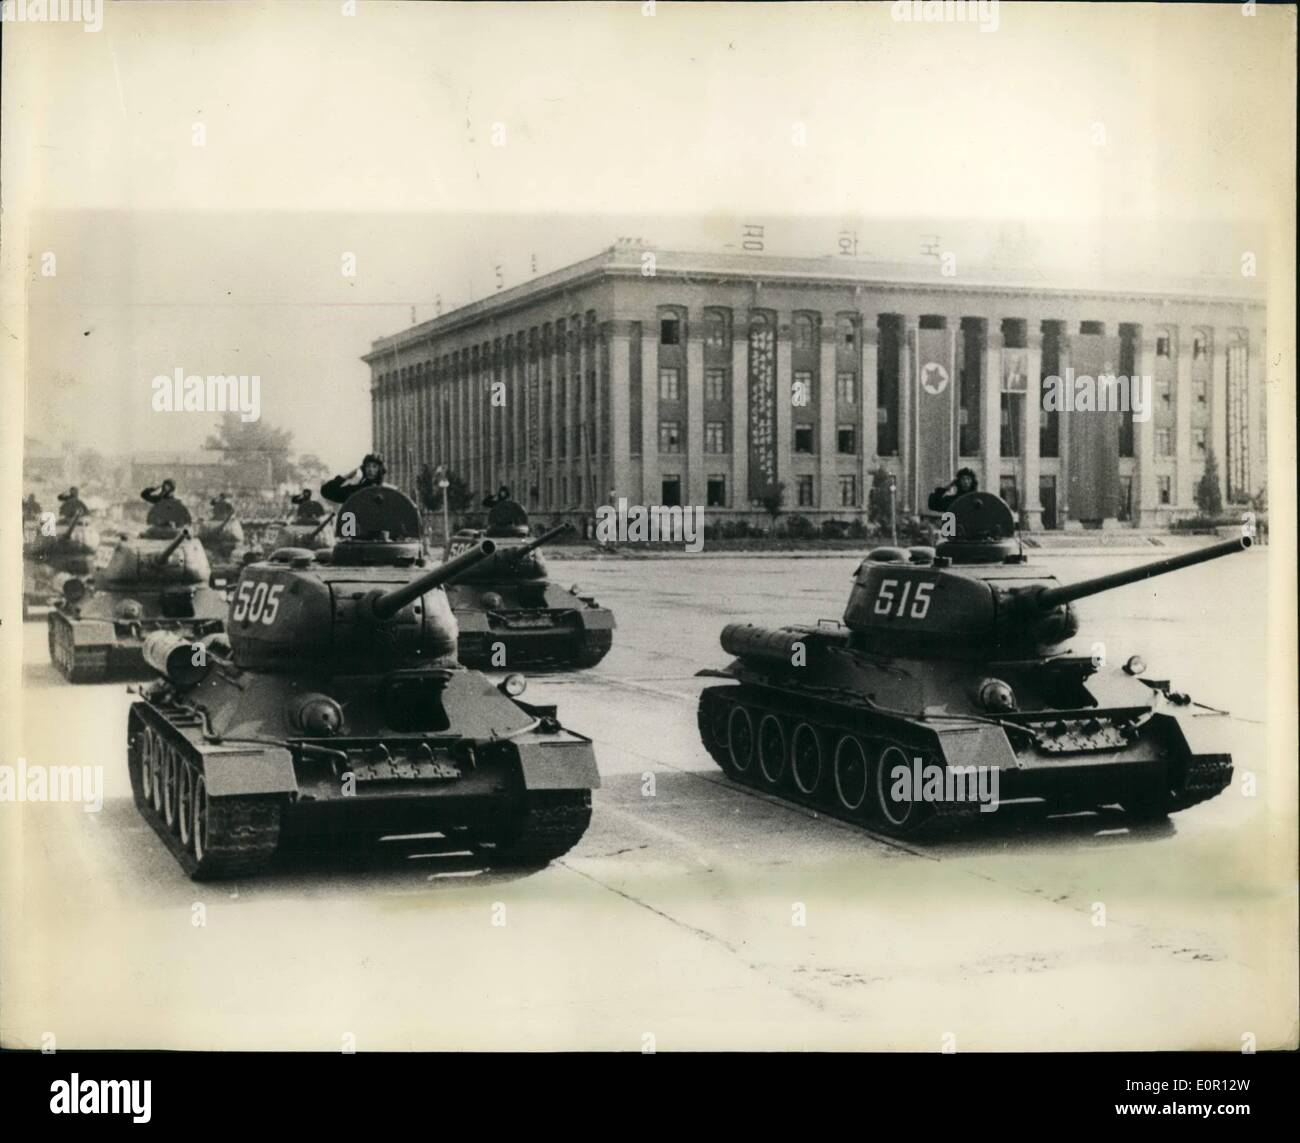 Aug. 08, 1957 - North Korea Celebrates Liberation Anniversary.: Russian made tanks took part in the military parade held at Kim - Stock Image